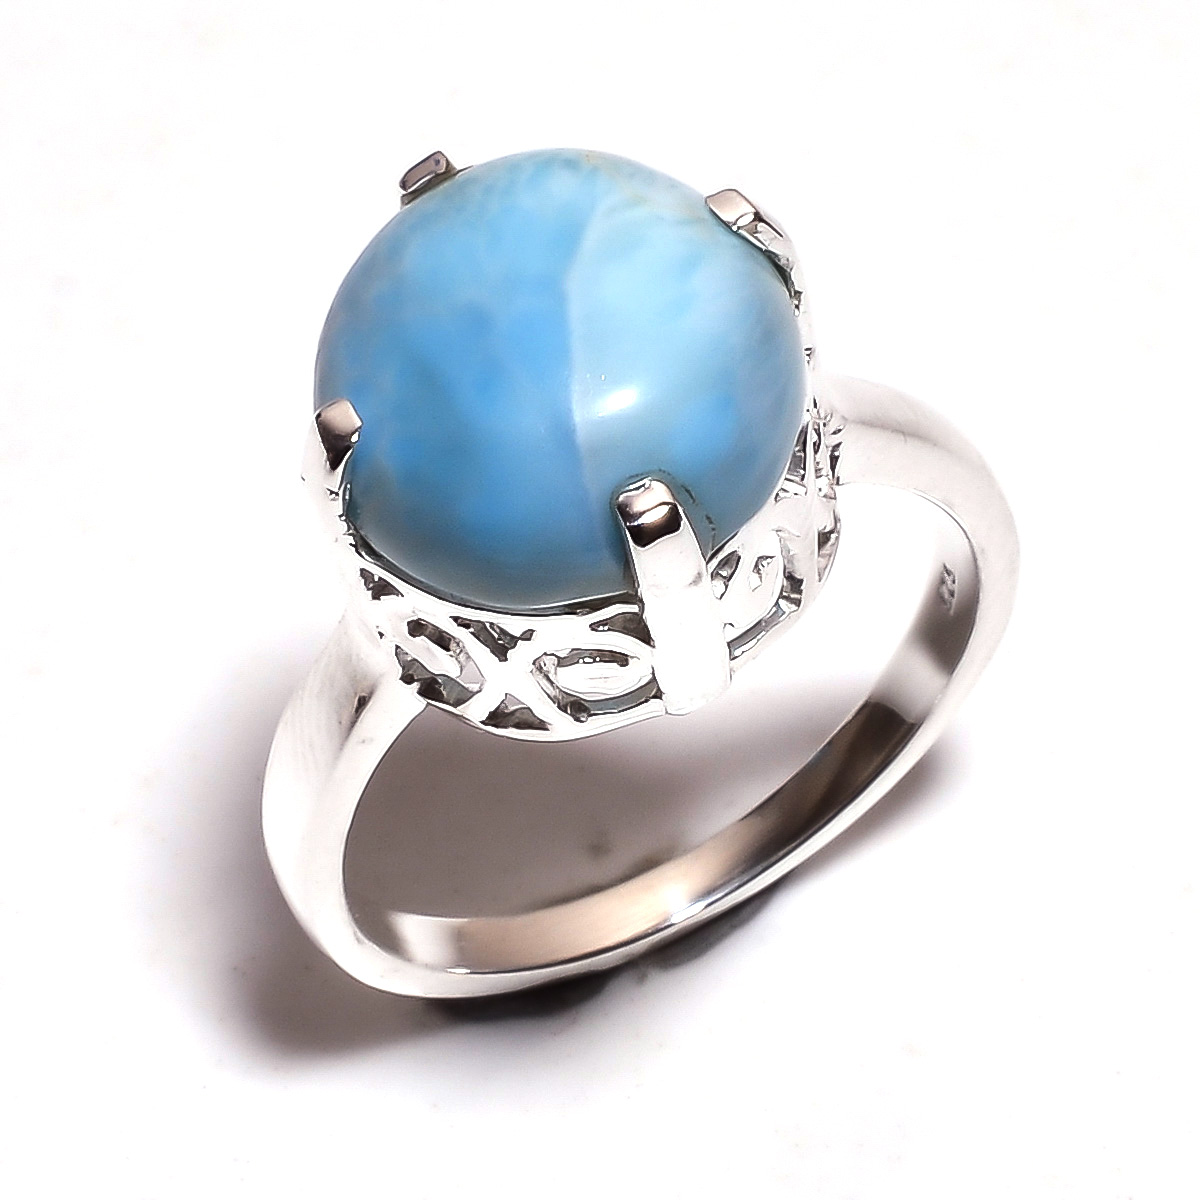 Larimar Gemstone 925 Sterling Silver Ring Size 8.5